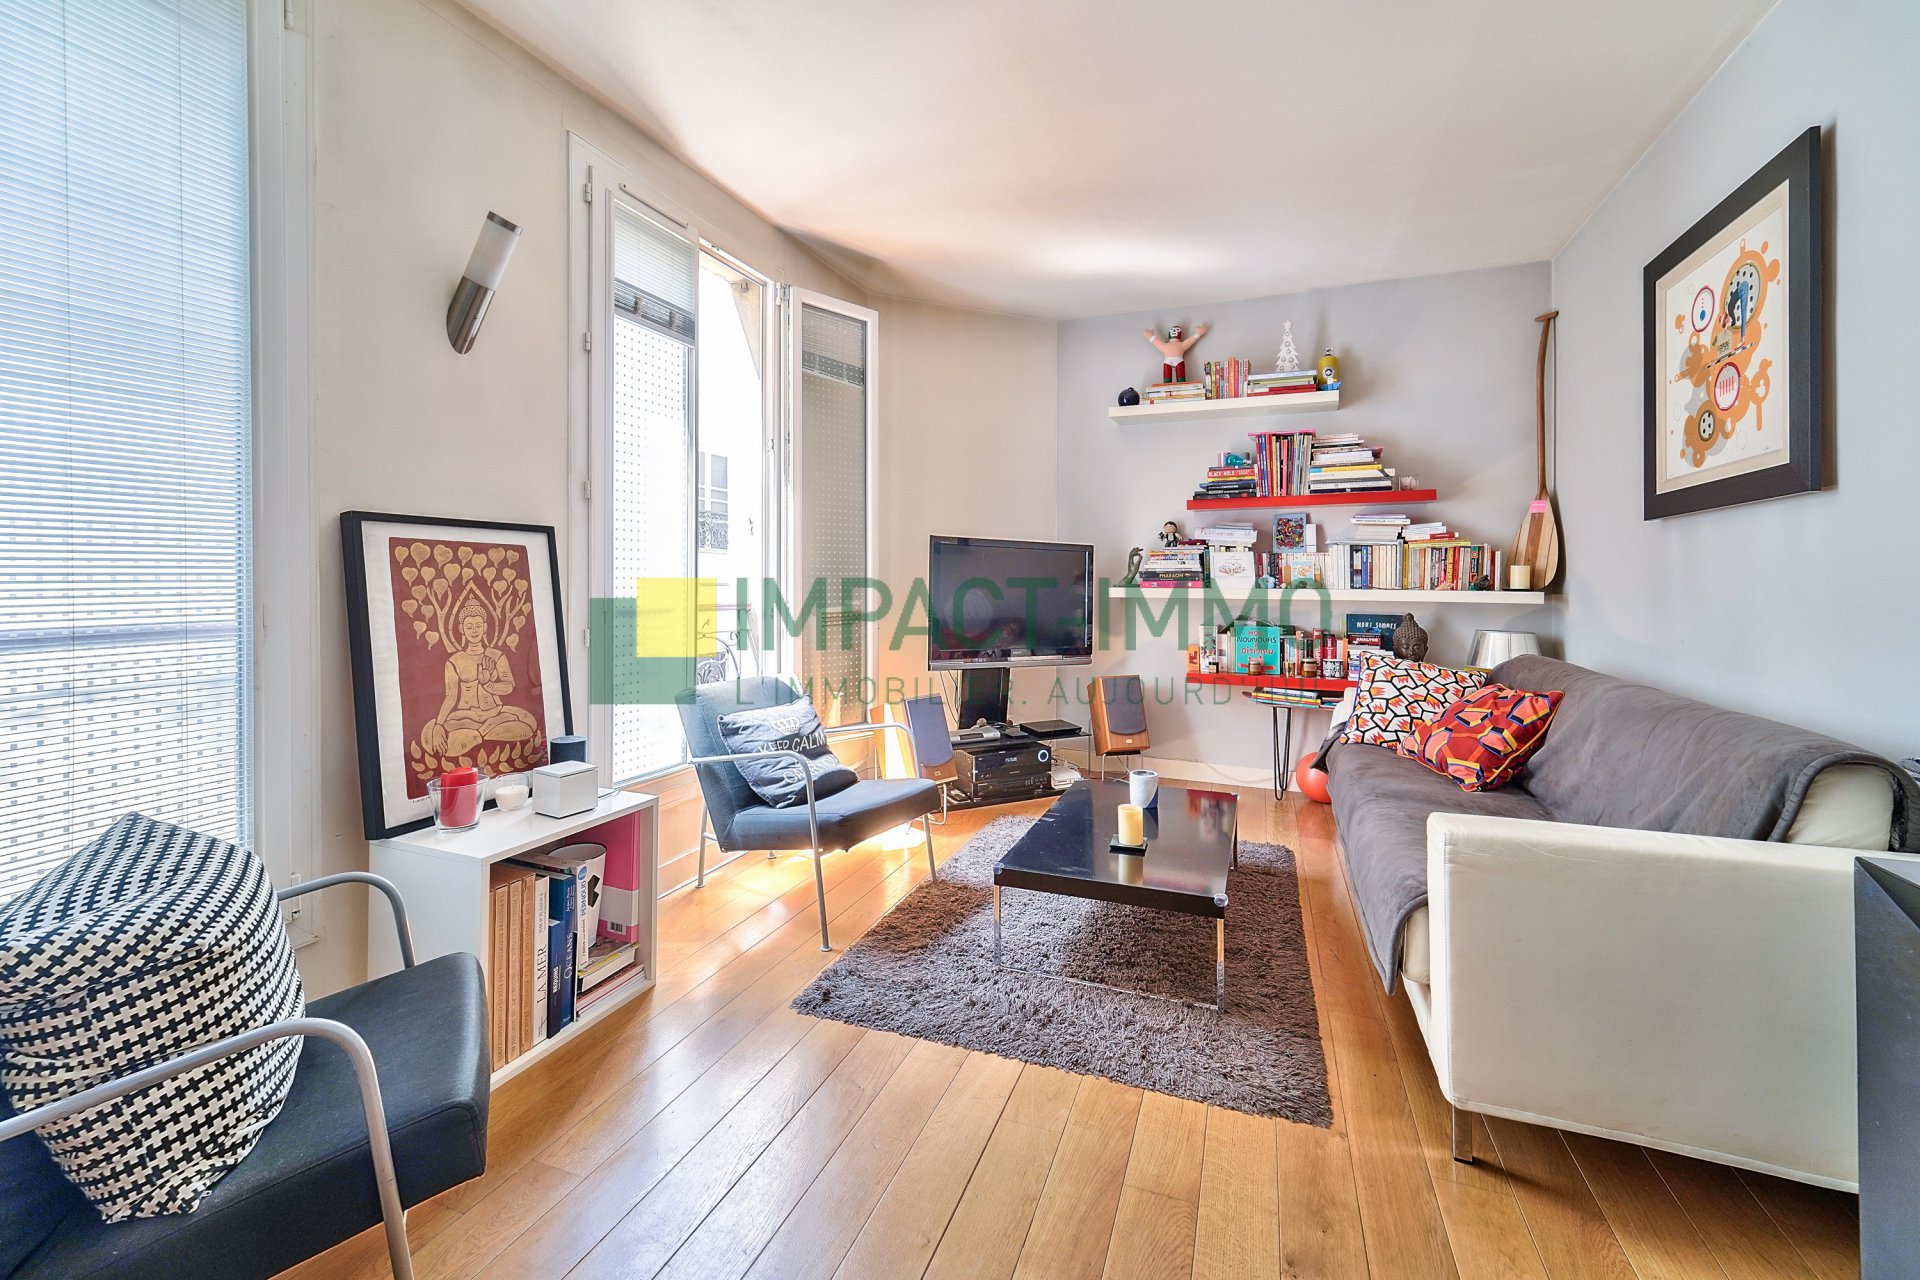 APPARTEMENT EN ETAGE ASCENSEUR - PARIS 17EME